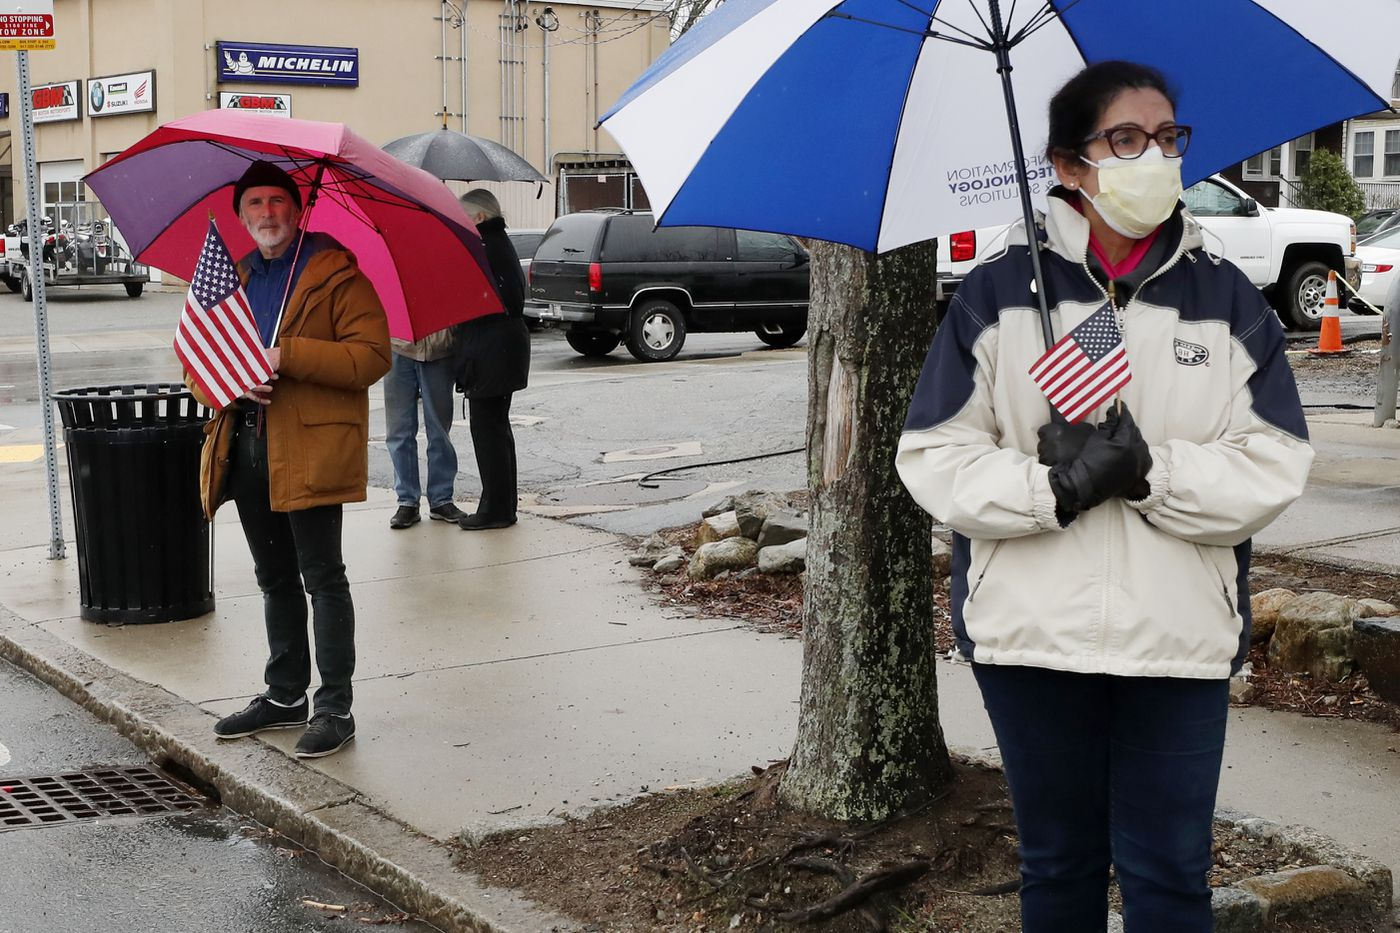 Officials warn against Easter travel amid coronavirus pandemic; 16.8M Americans out of work